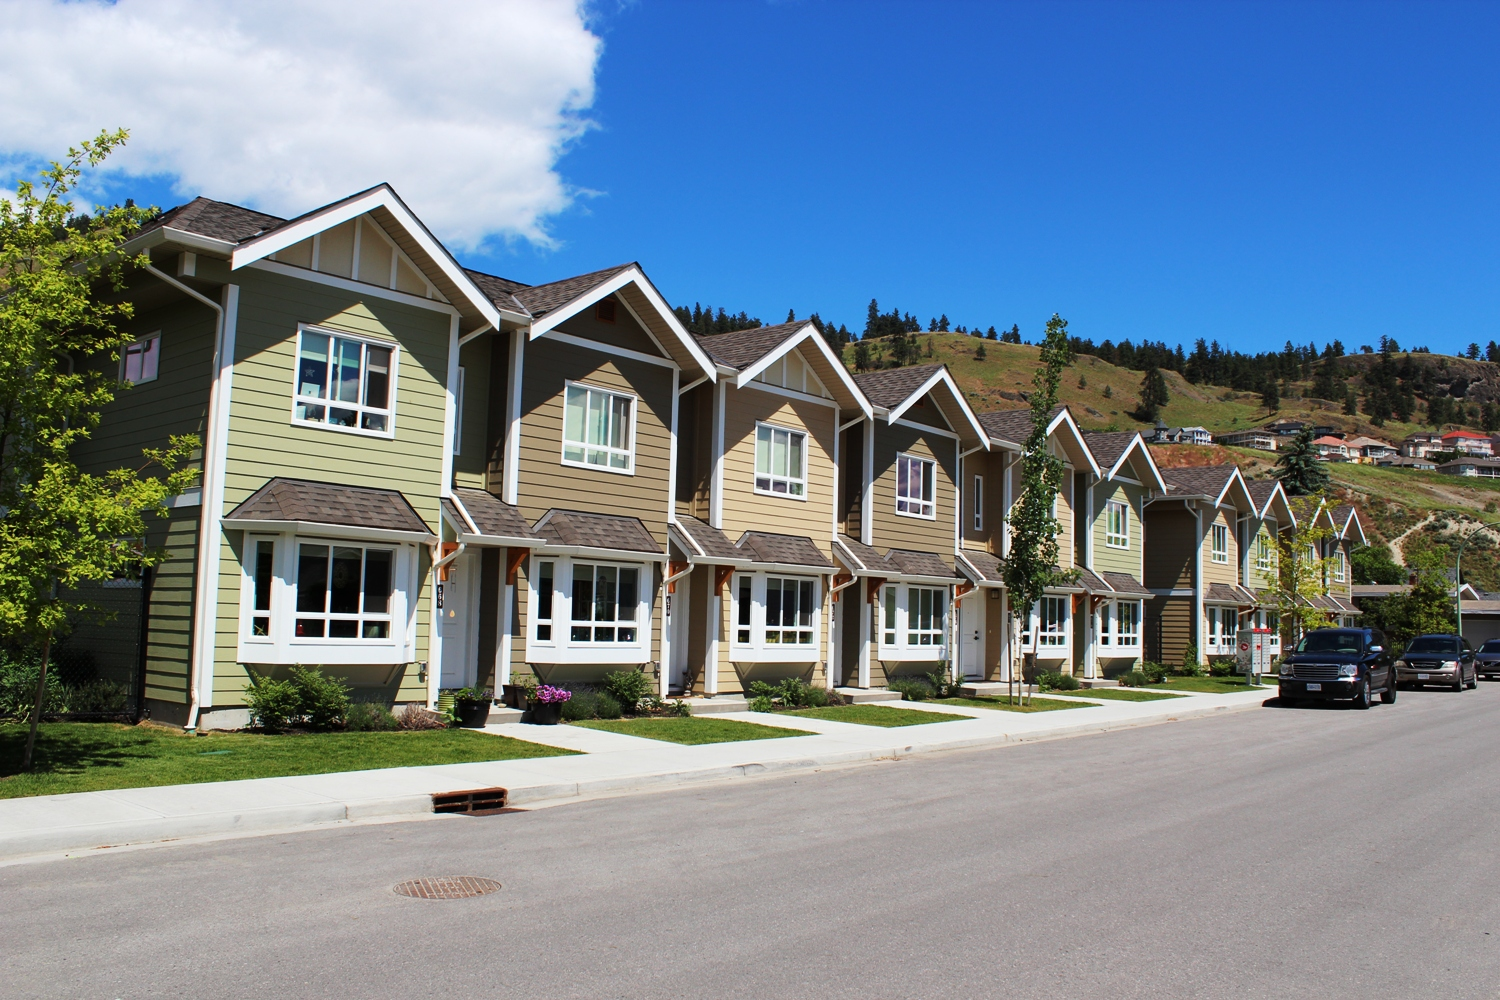 2 And 3 Bedroom Kelowna Townhomes For Sale Quincy Vrecko